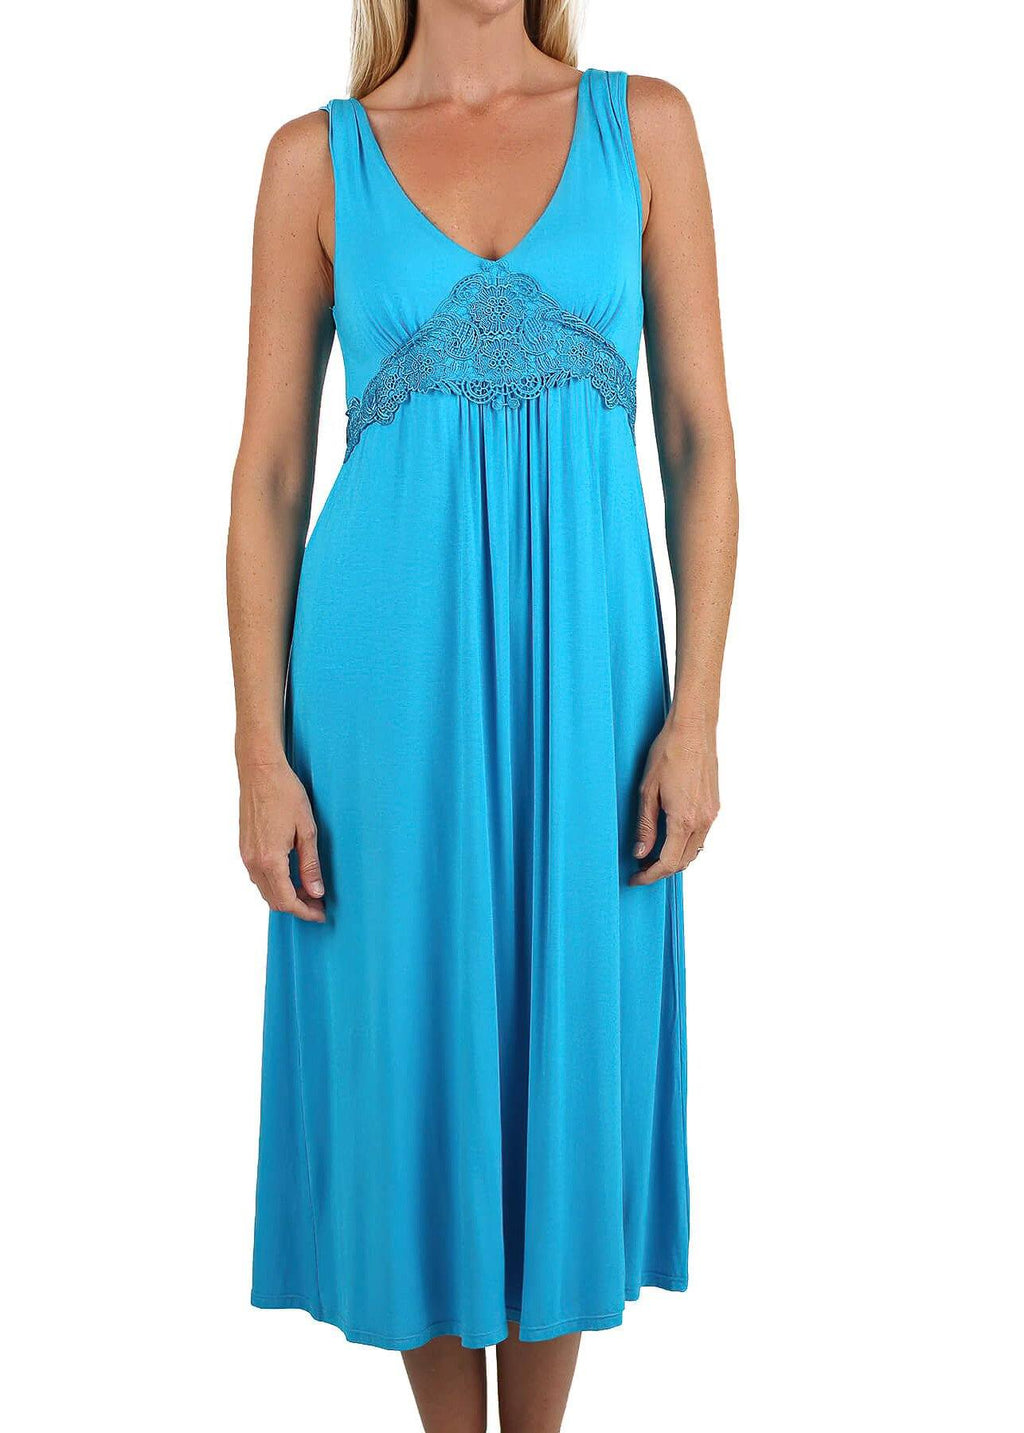 Dreamy Nightgown - Capri Blue Mystique Intimates